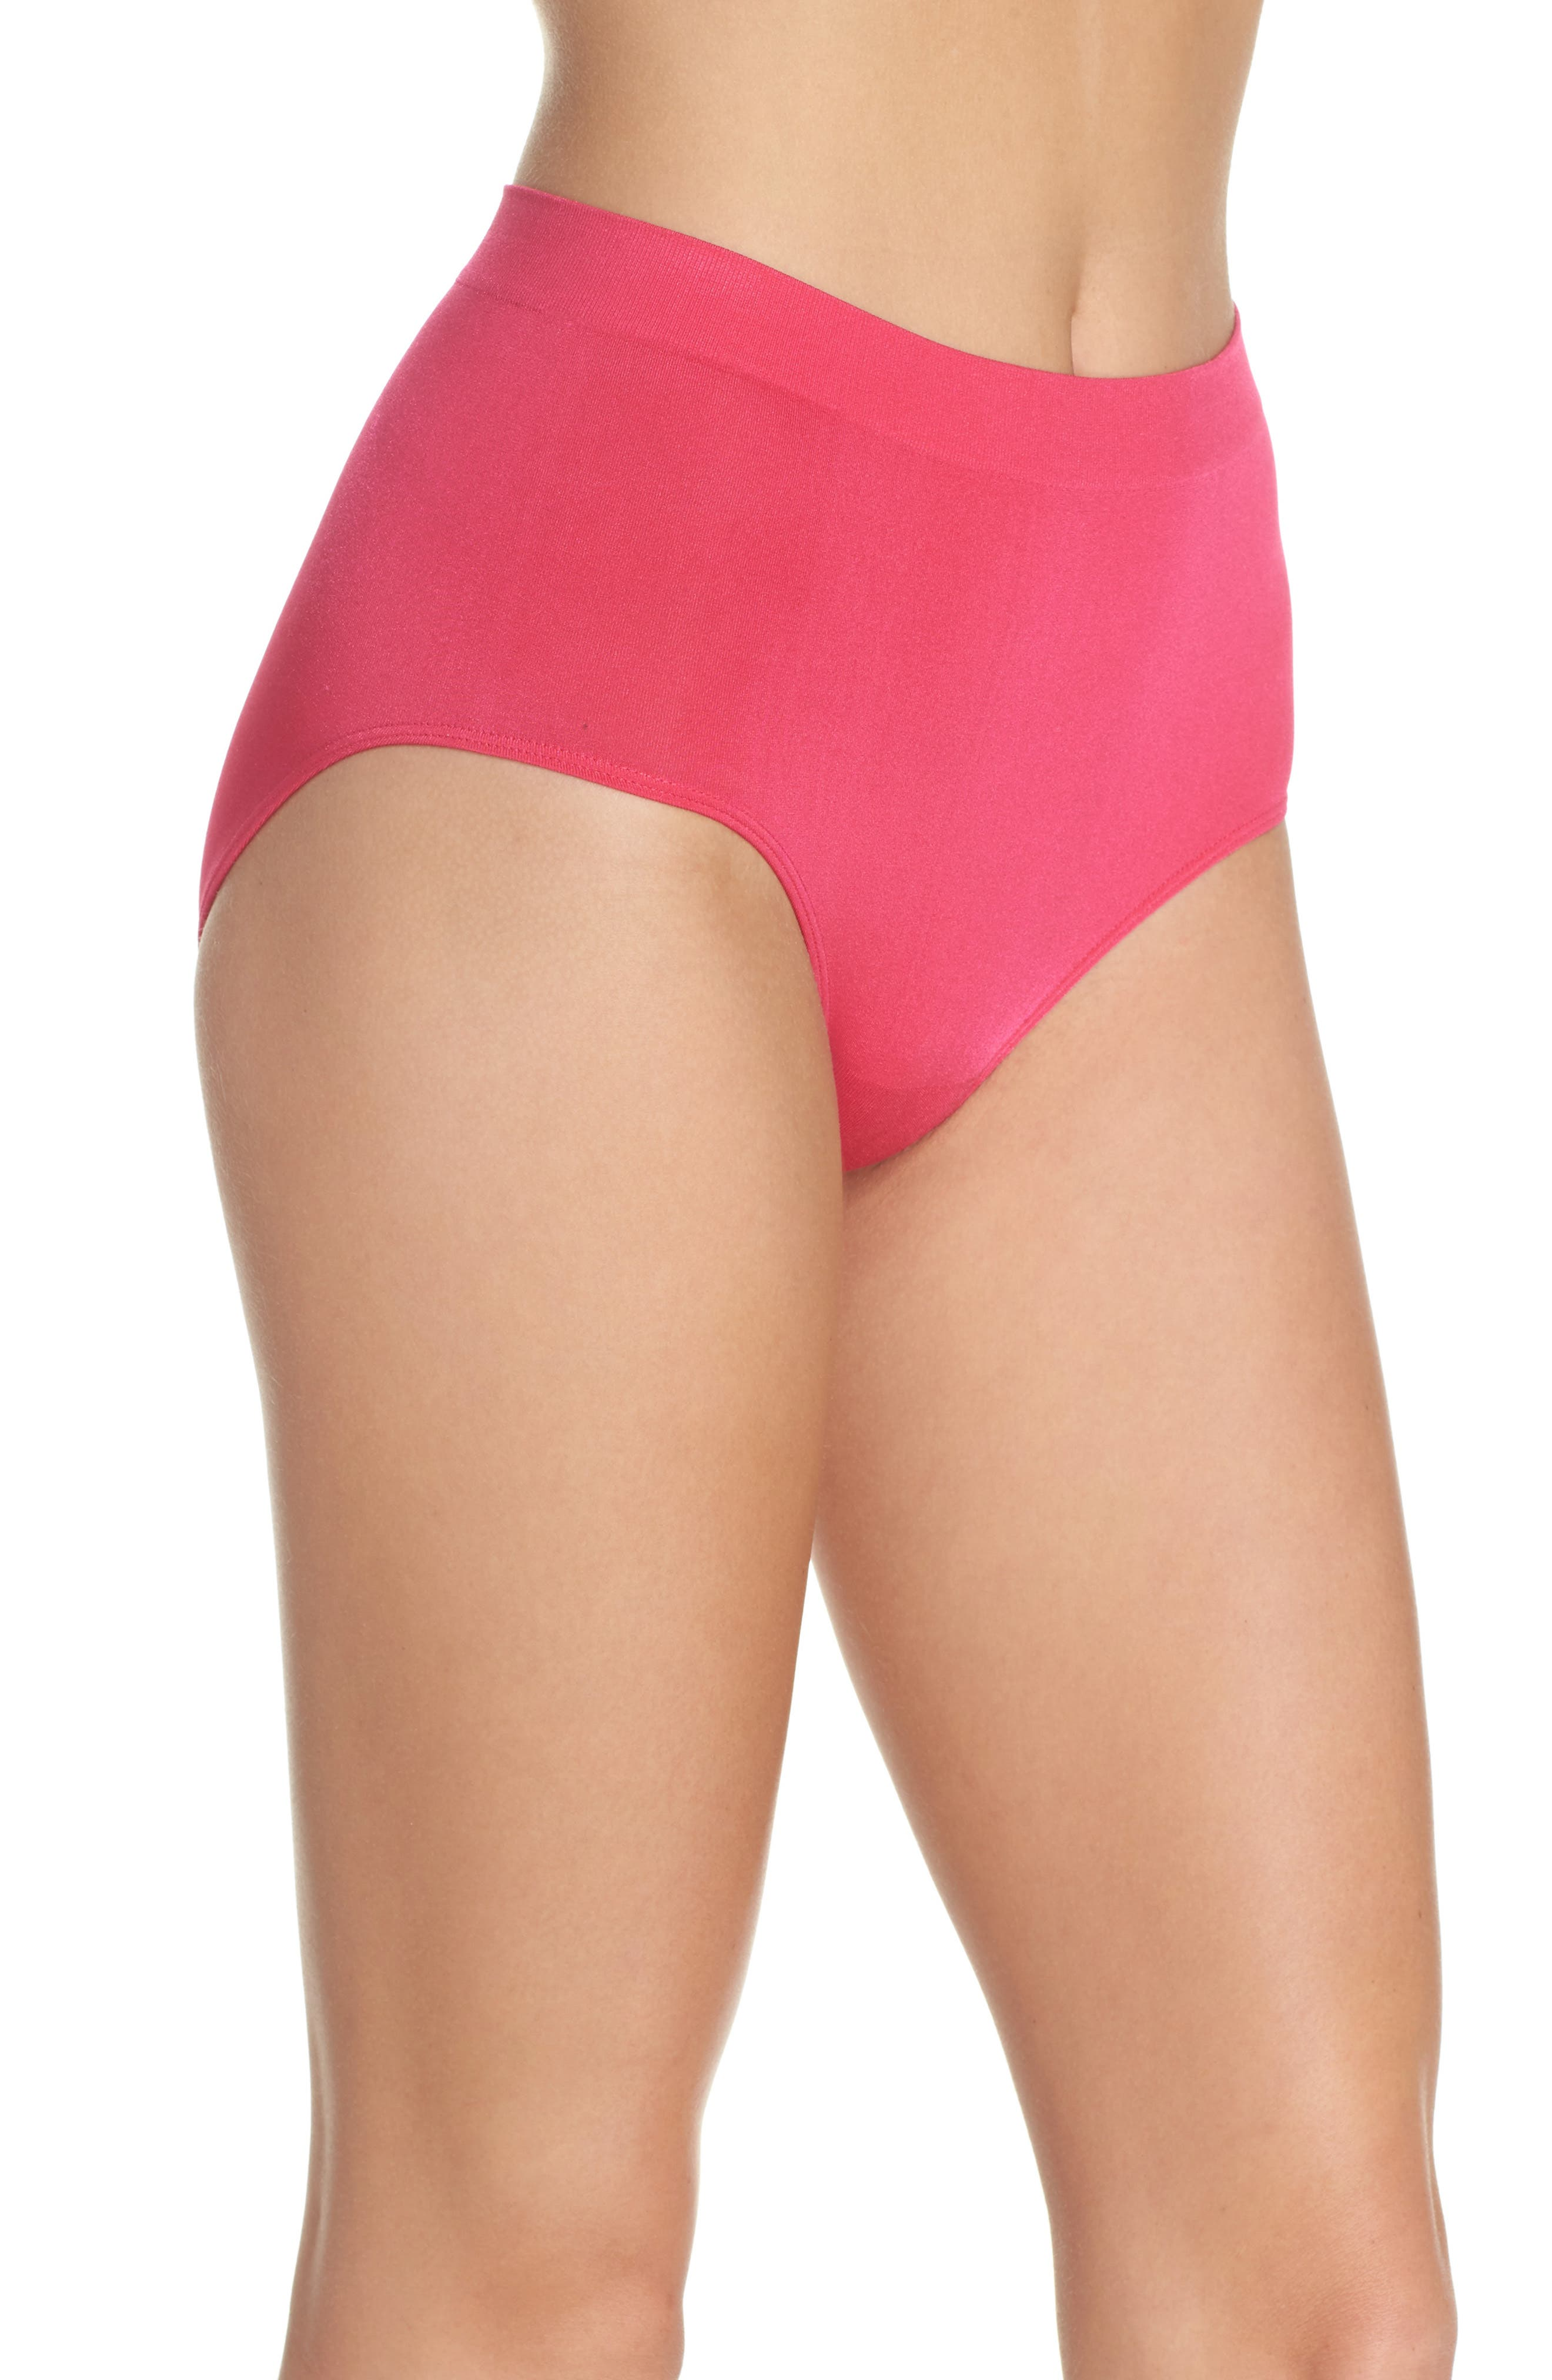 B Smooth Briefs,                             Alternate thumbnail 5, color,                             Pink Peacock